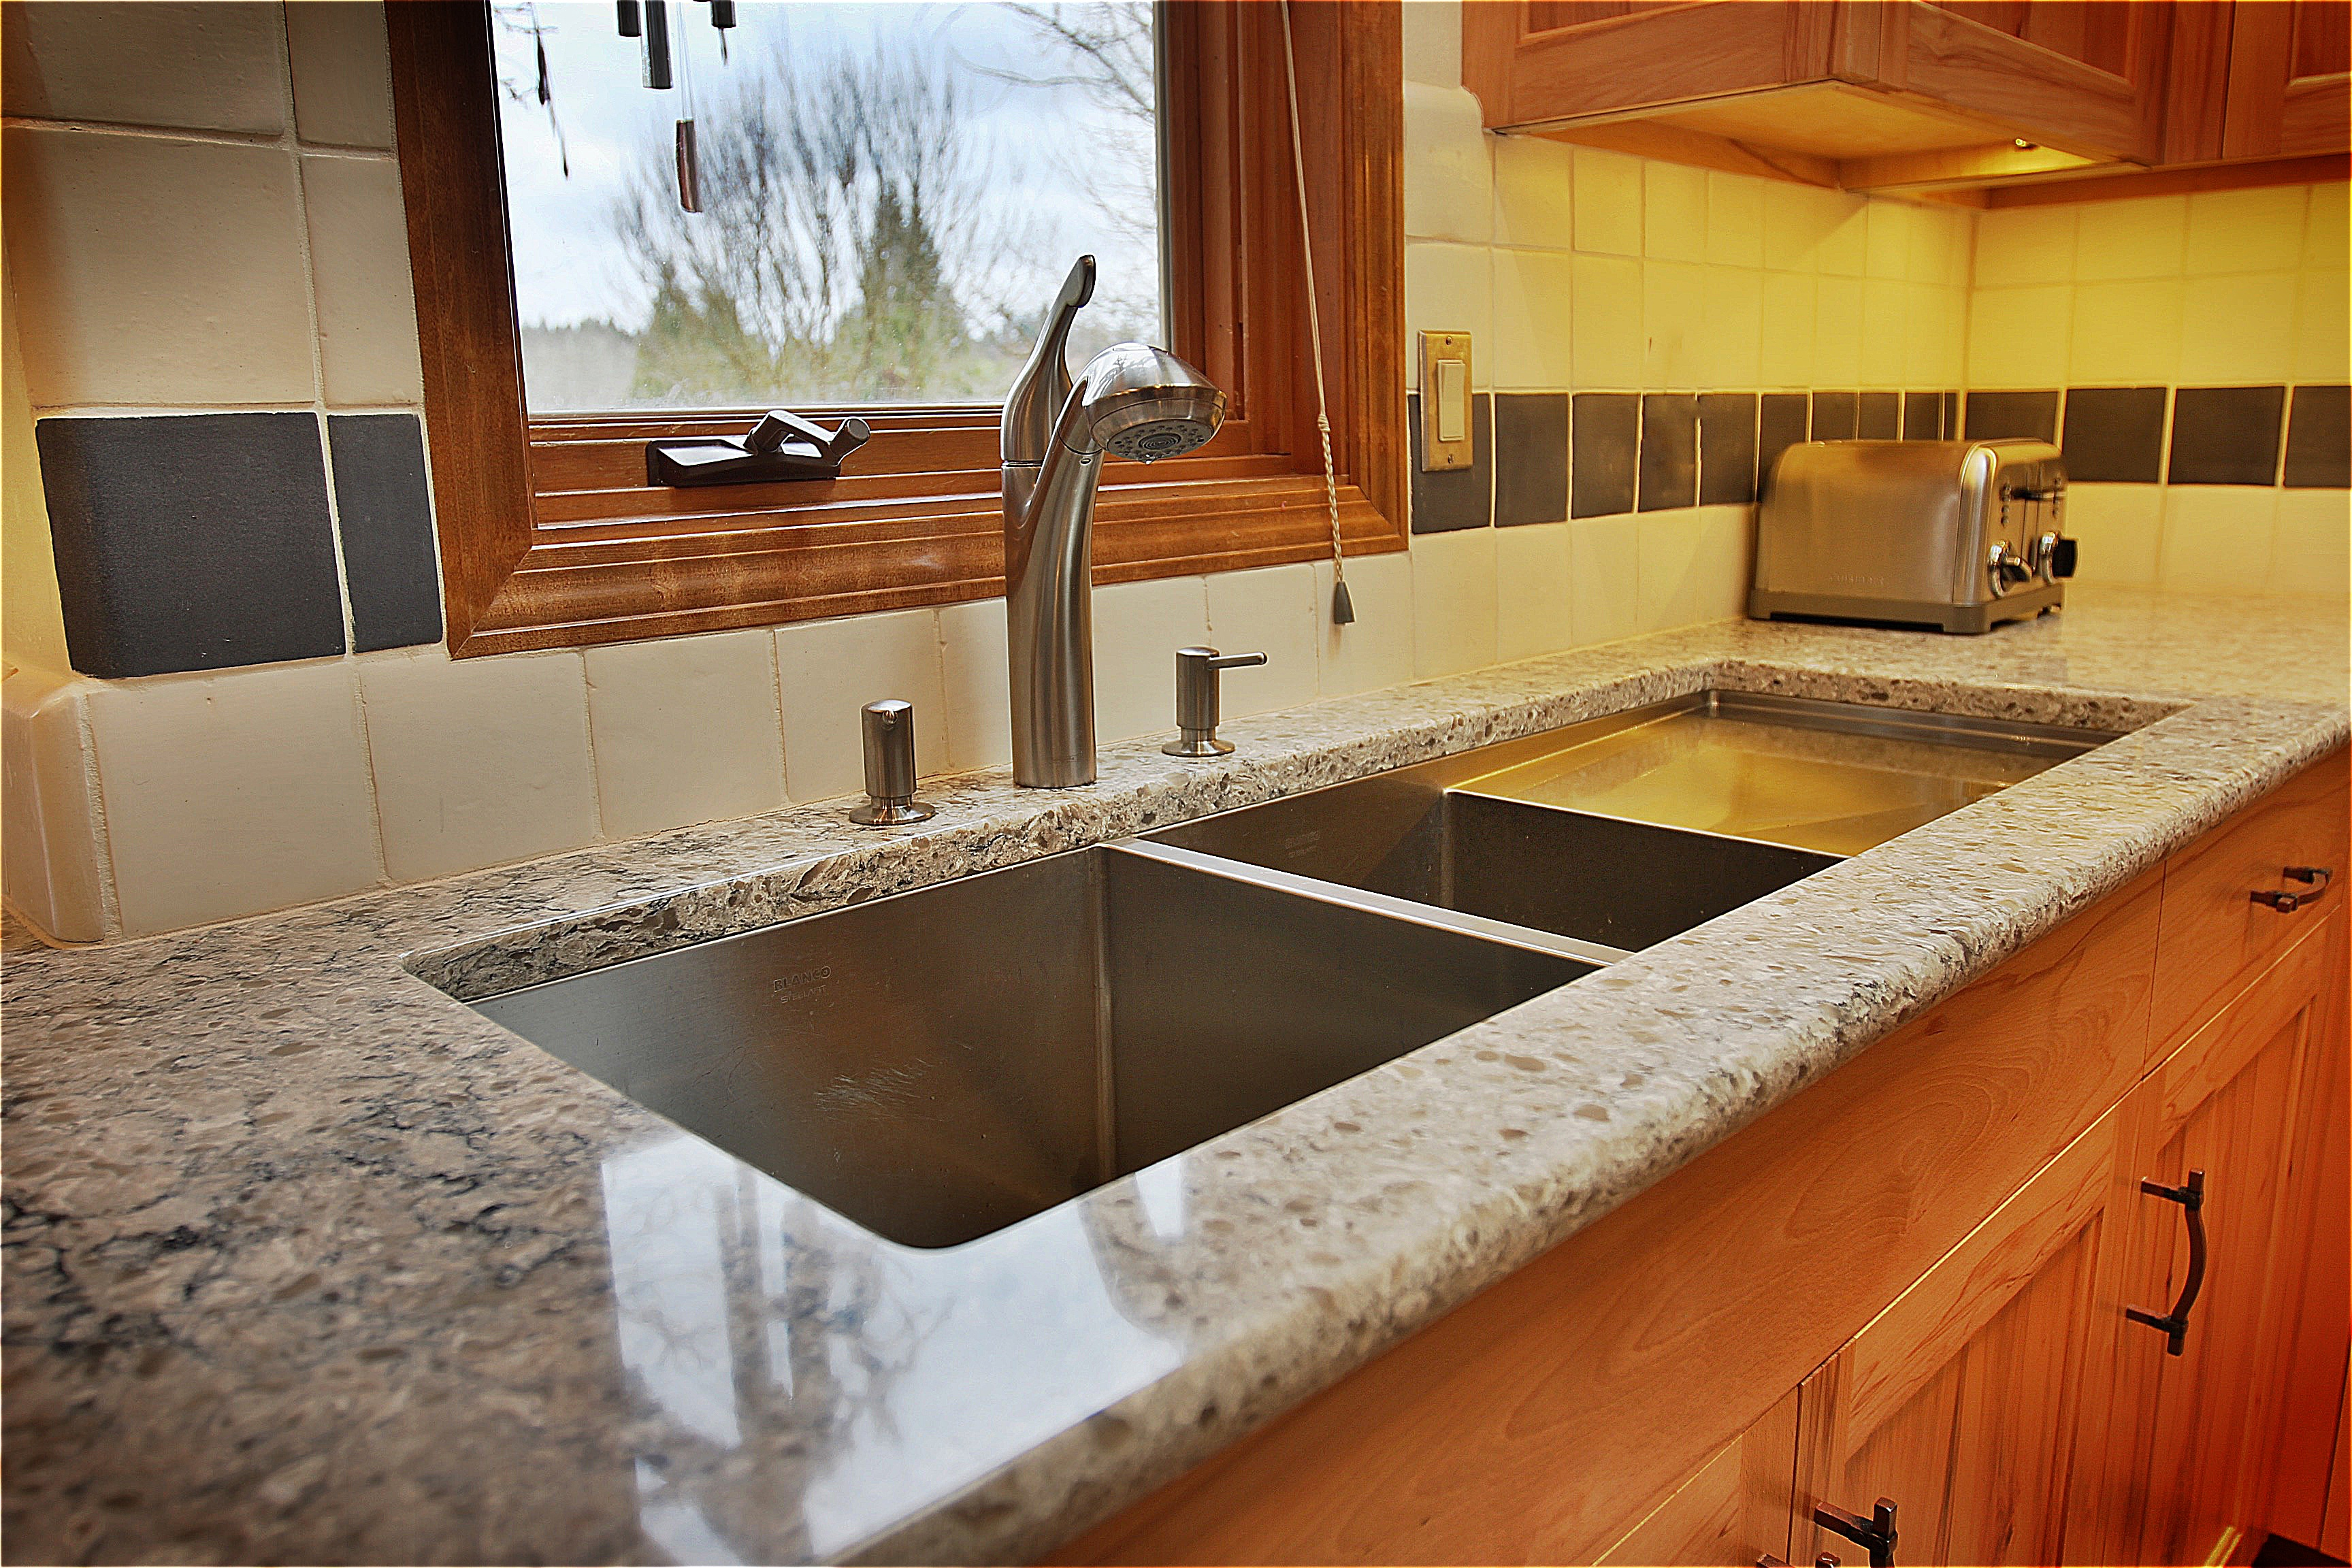 tops of counter adventures countertops installed leathered christinas cost granite